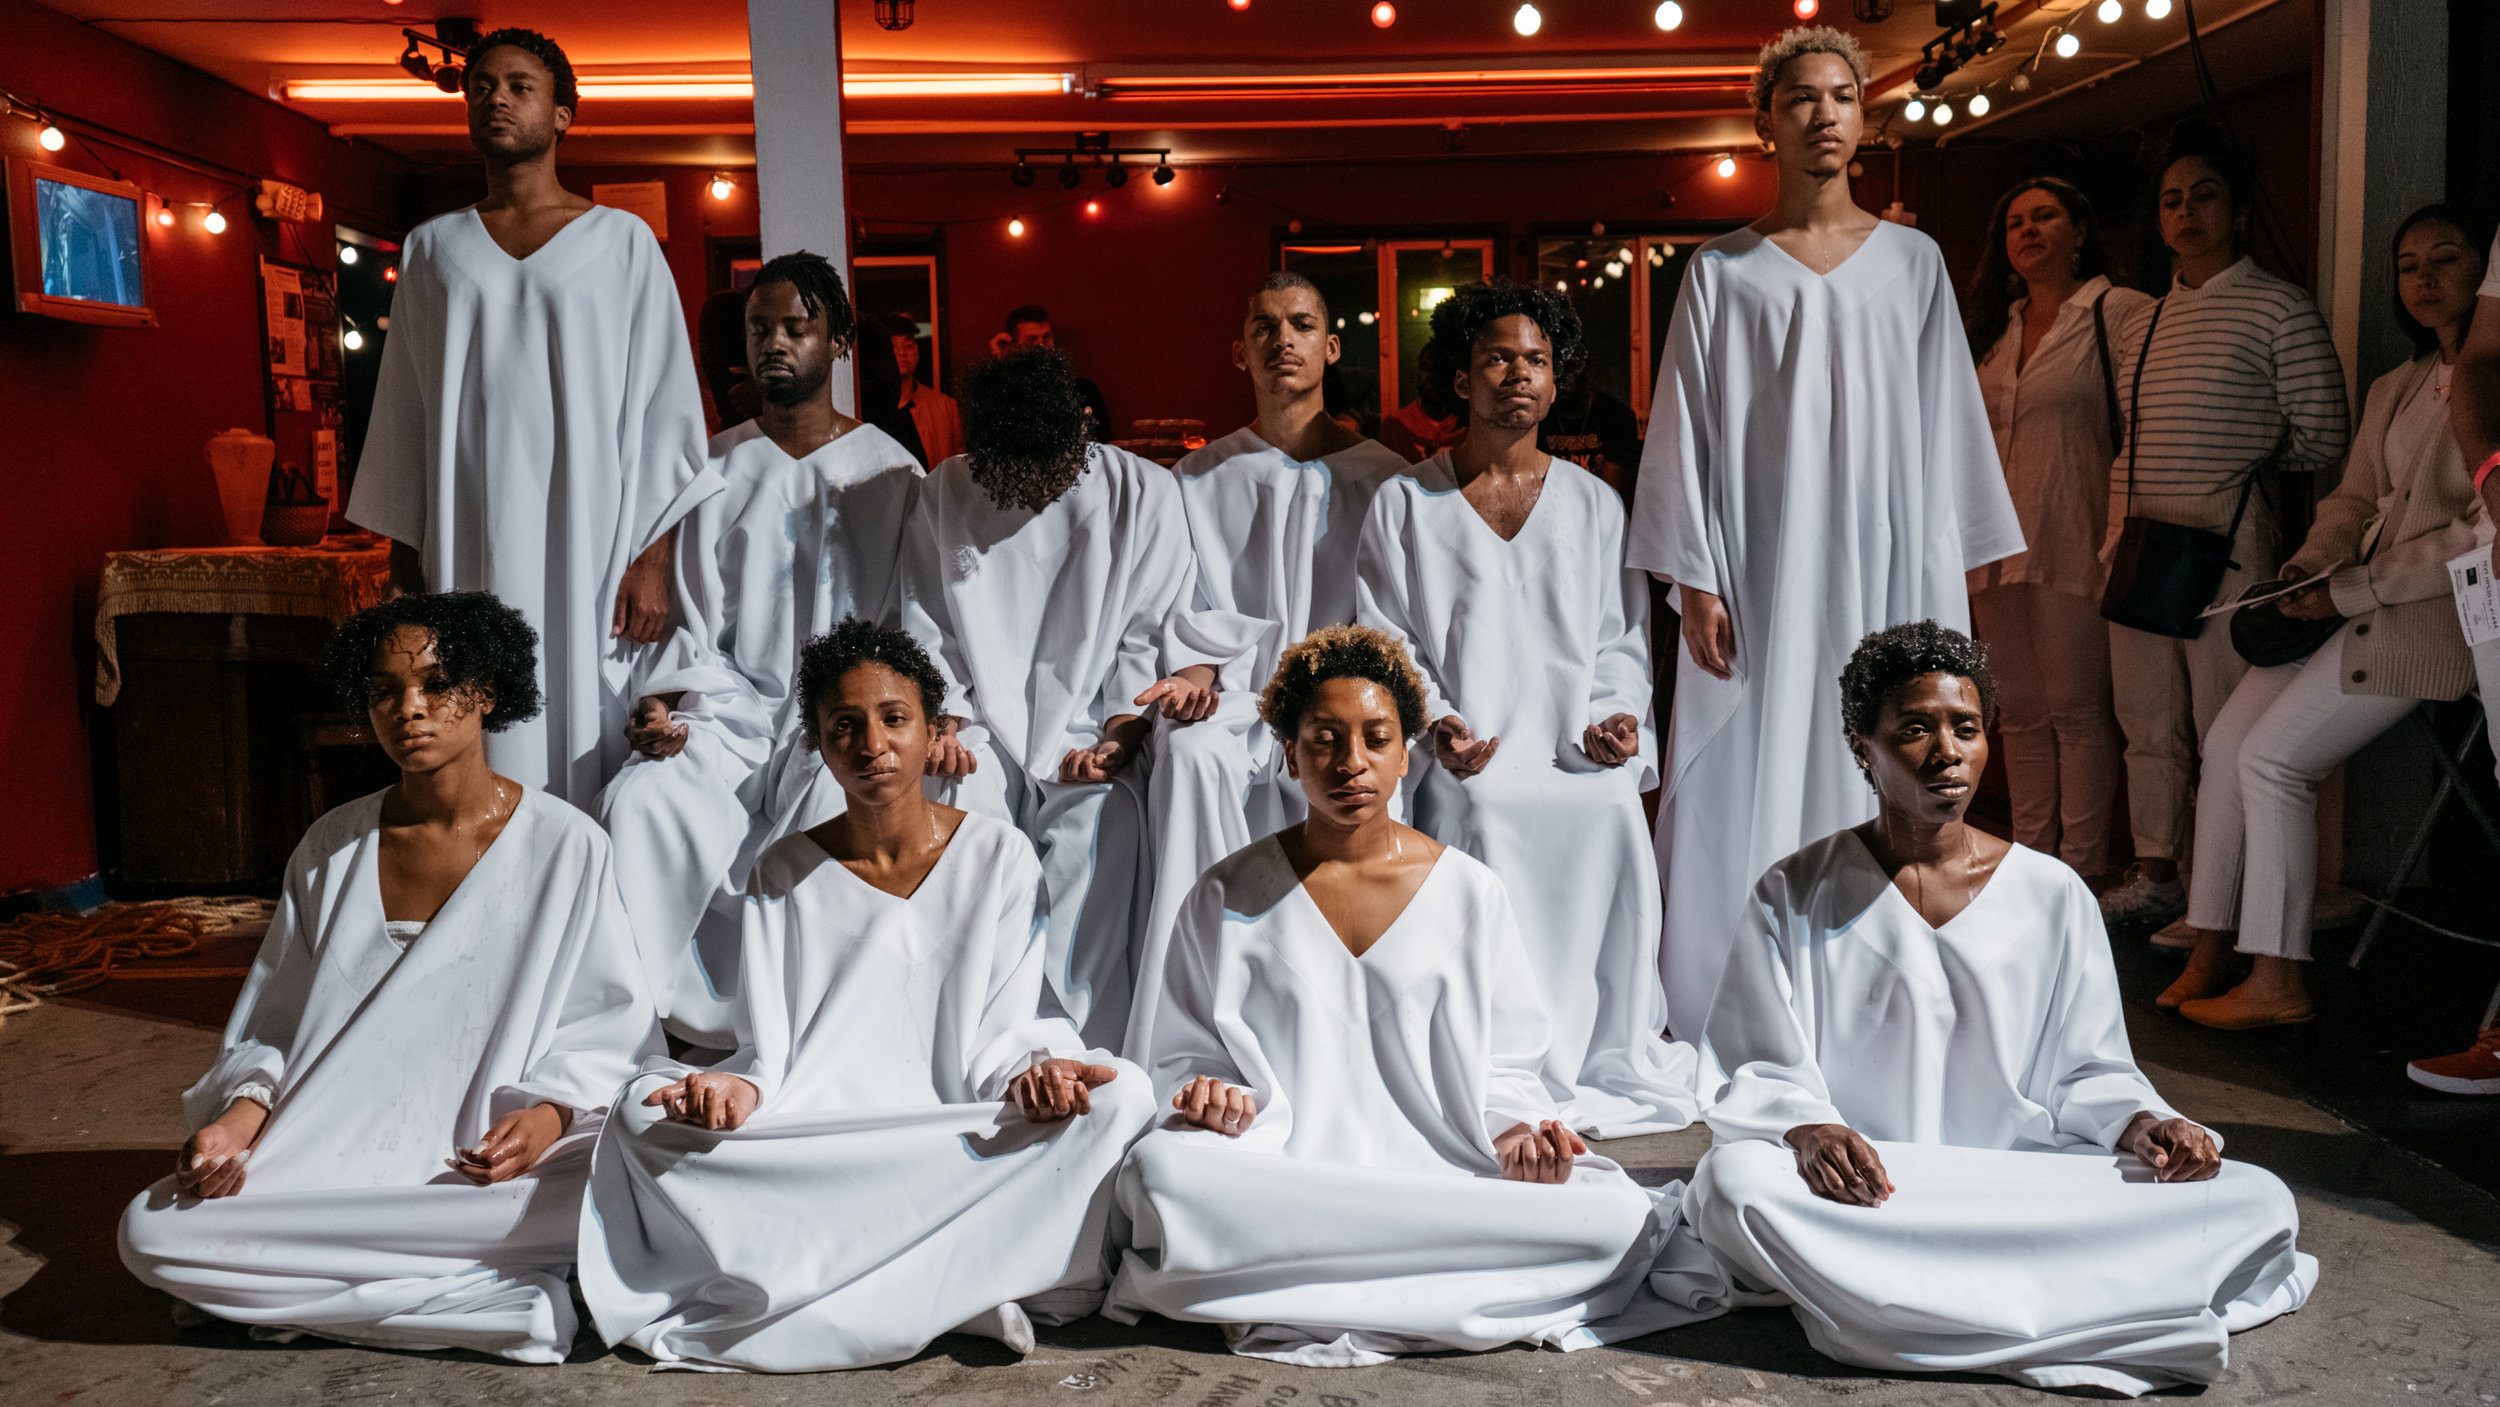 All Black bodies. All white robes. Healing collectively.